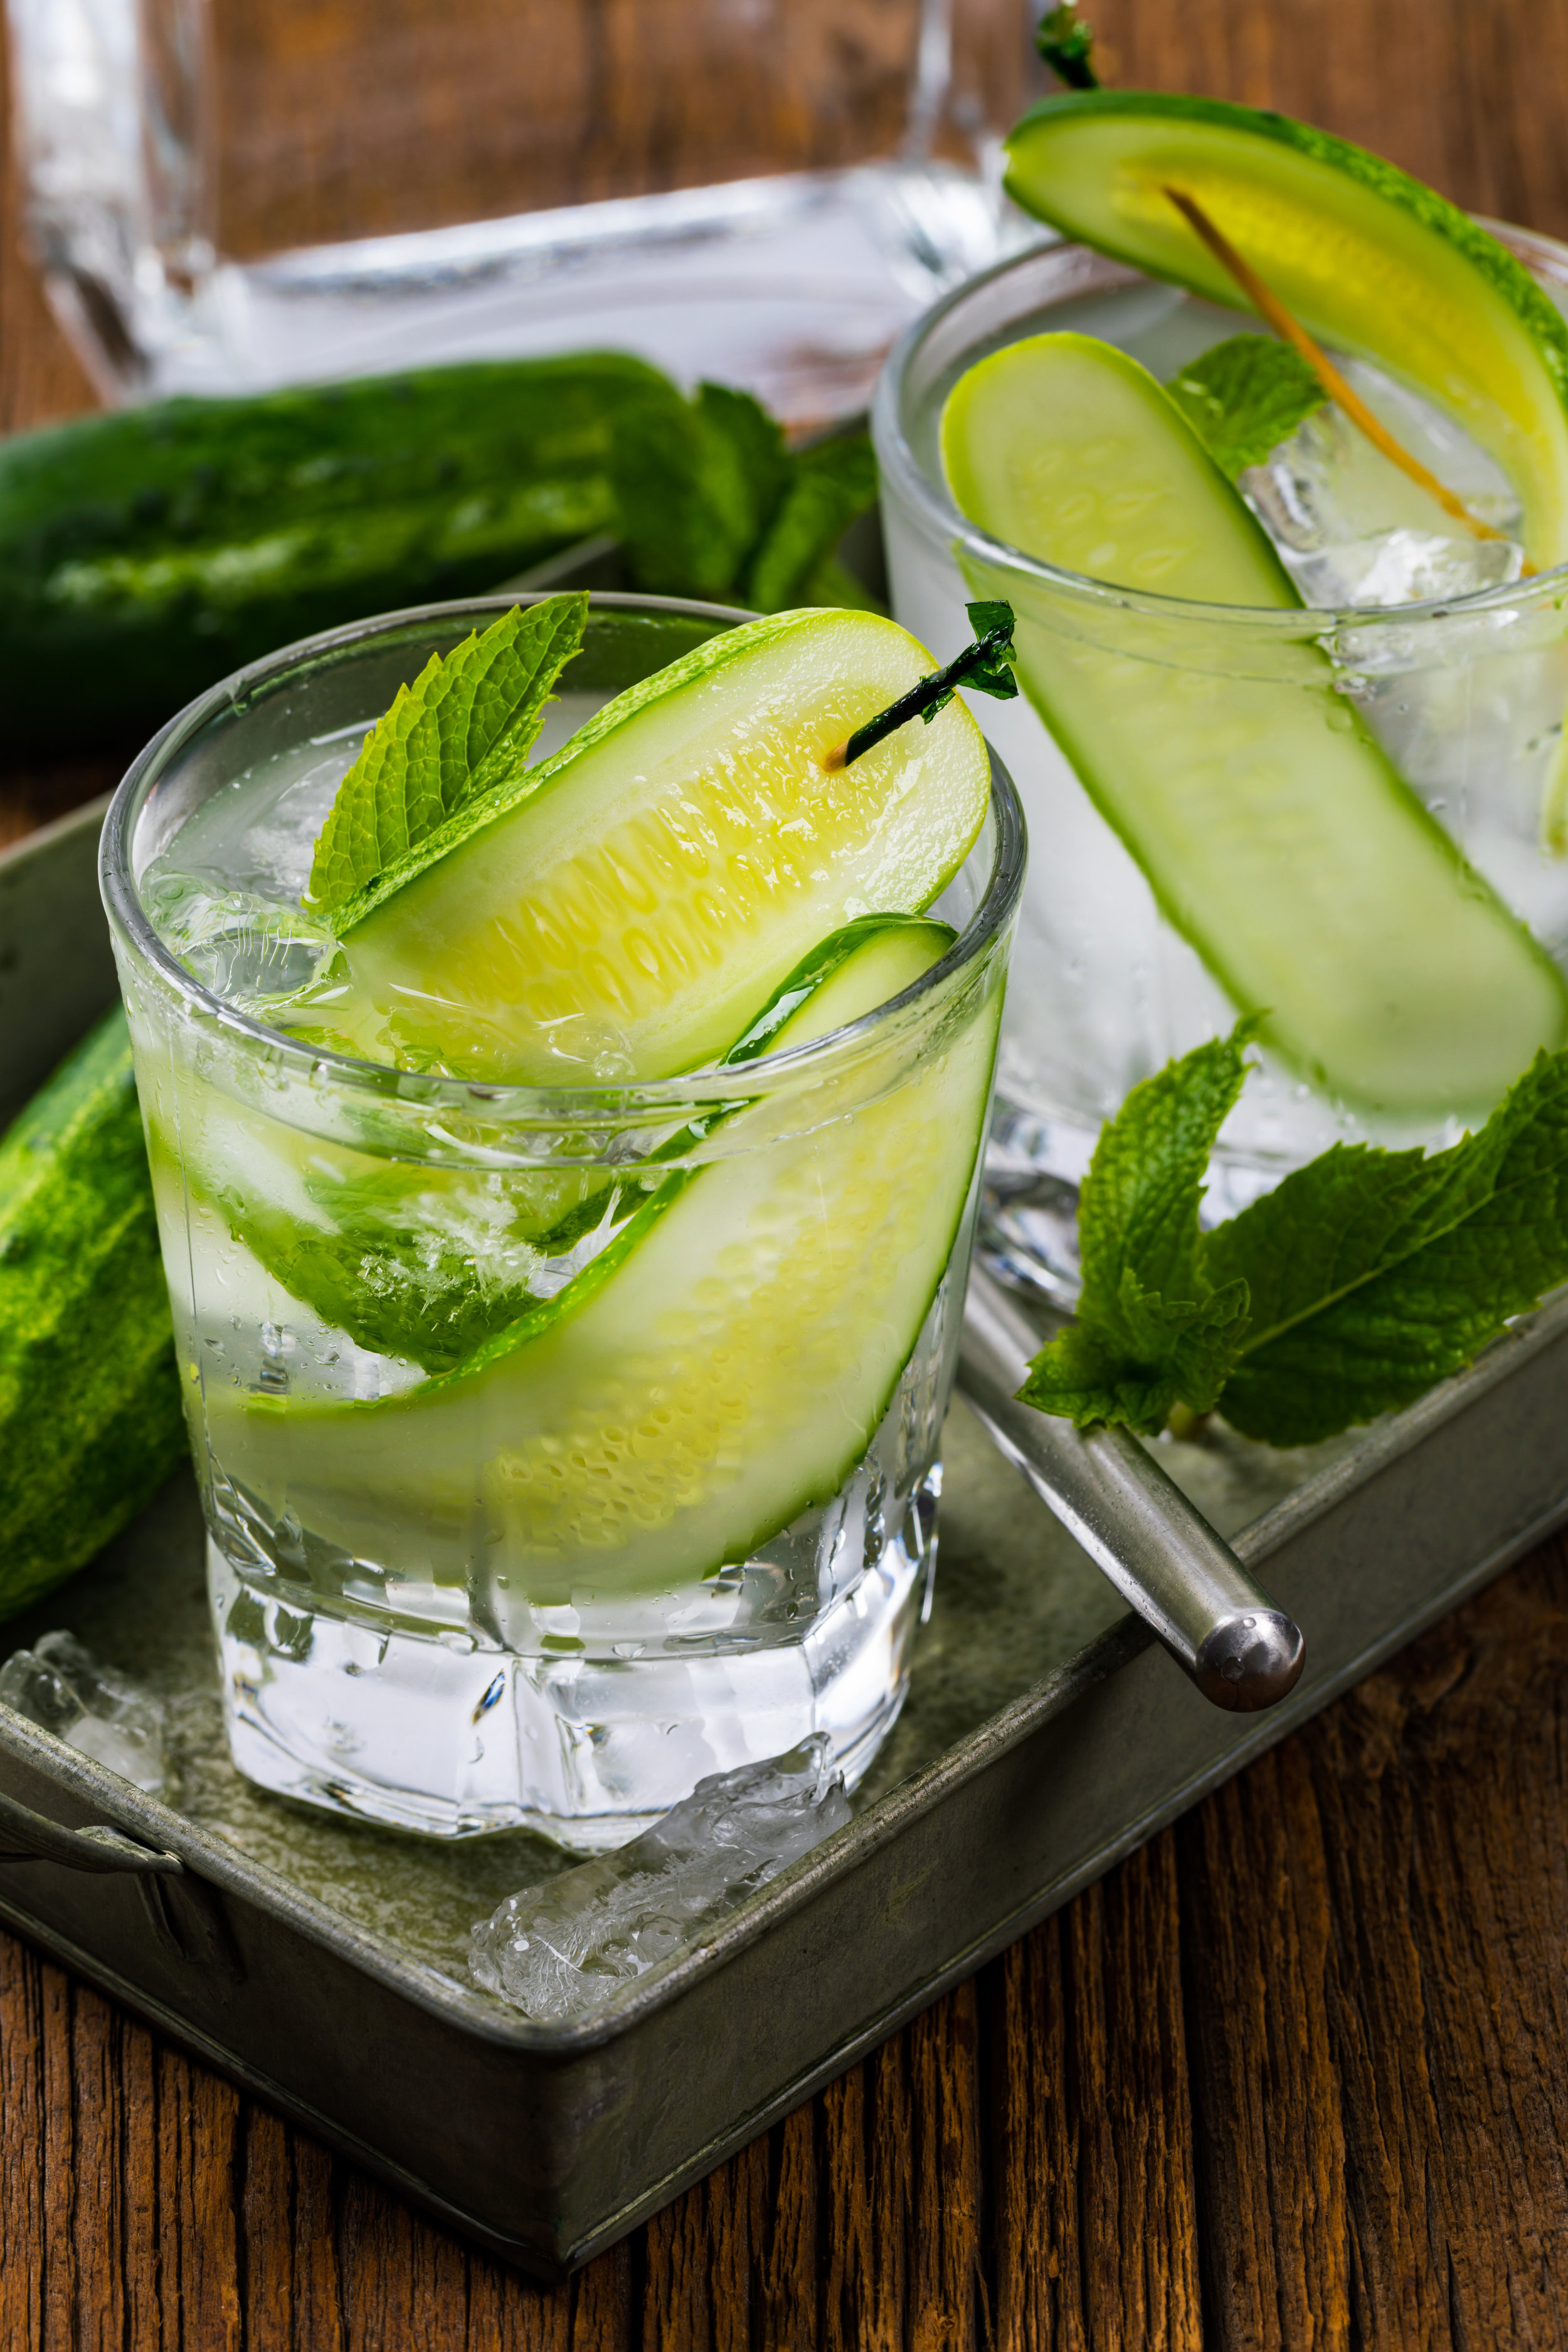 Tequila Eastside - 2 oz. blanco 100% agave tequila, .75 oz. simple syrup (to make, combine and stir one part  granulated sugar and one part water), 1 oz. lime juice, 2 cucumber wheels and 2 mint sprigs (or sage leaves).